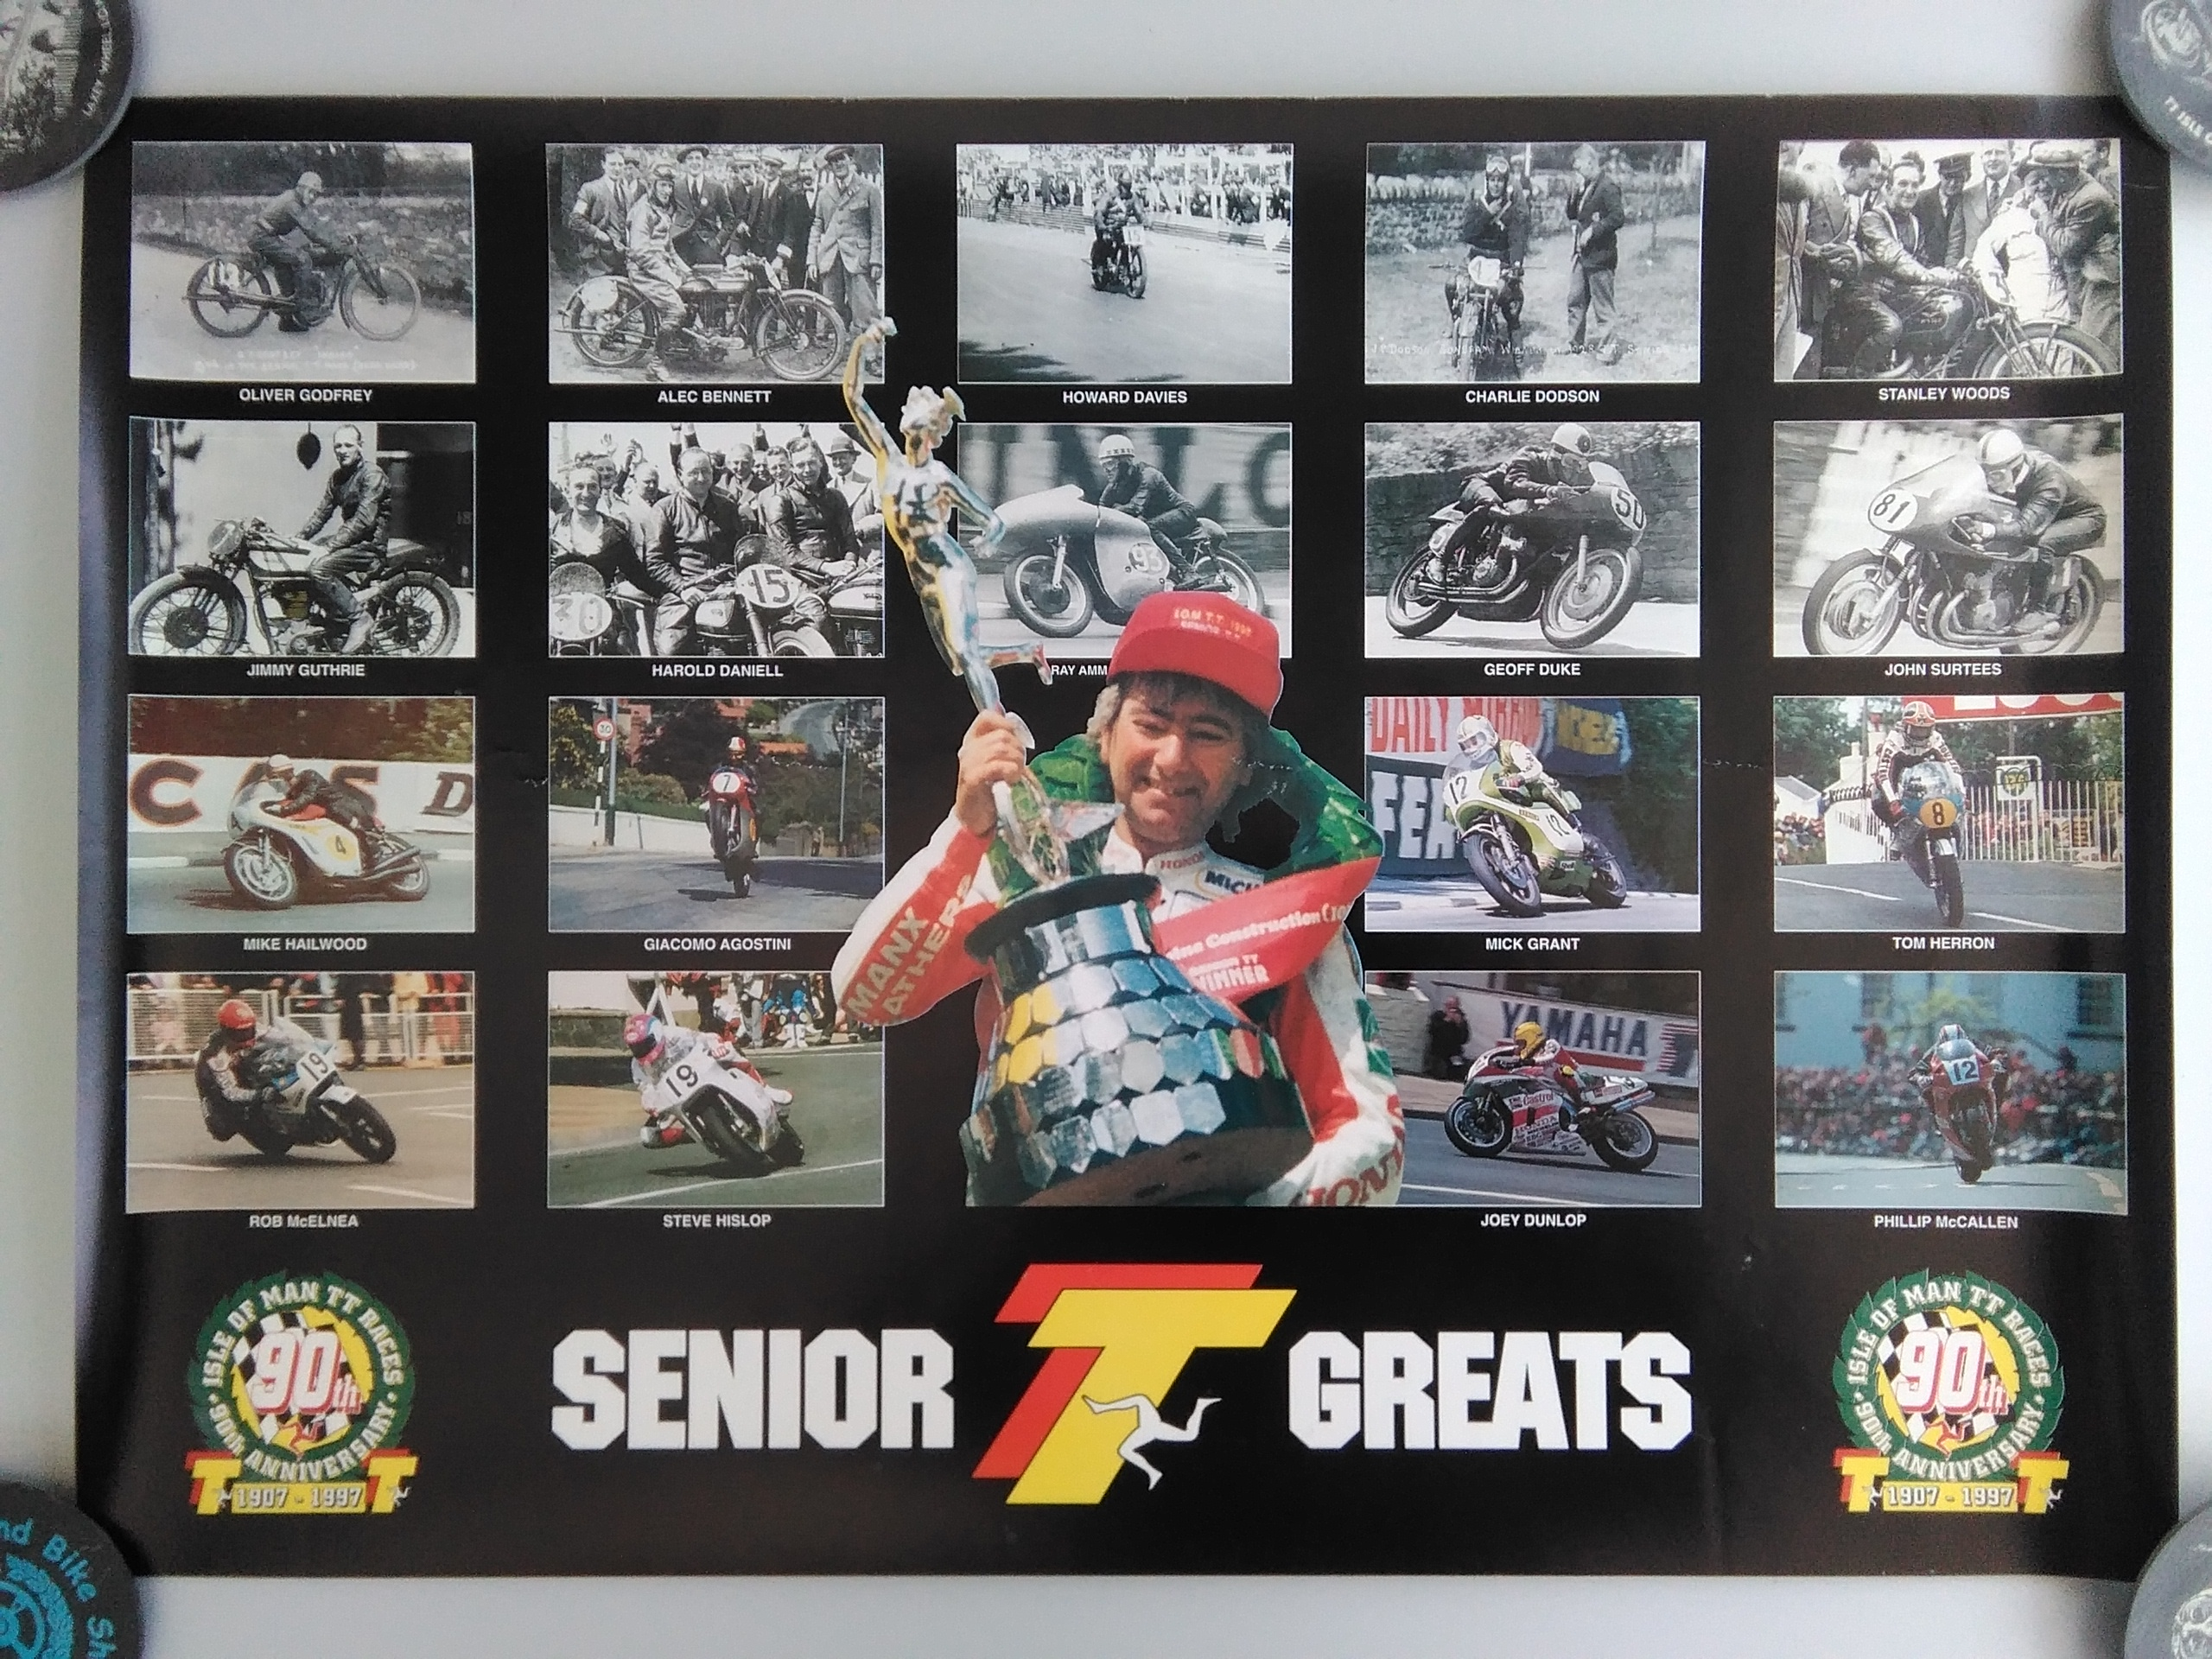 Senior TT Greats Poster